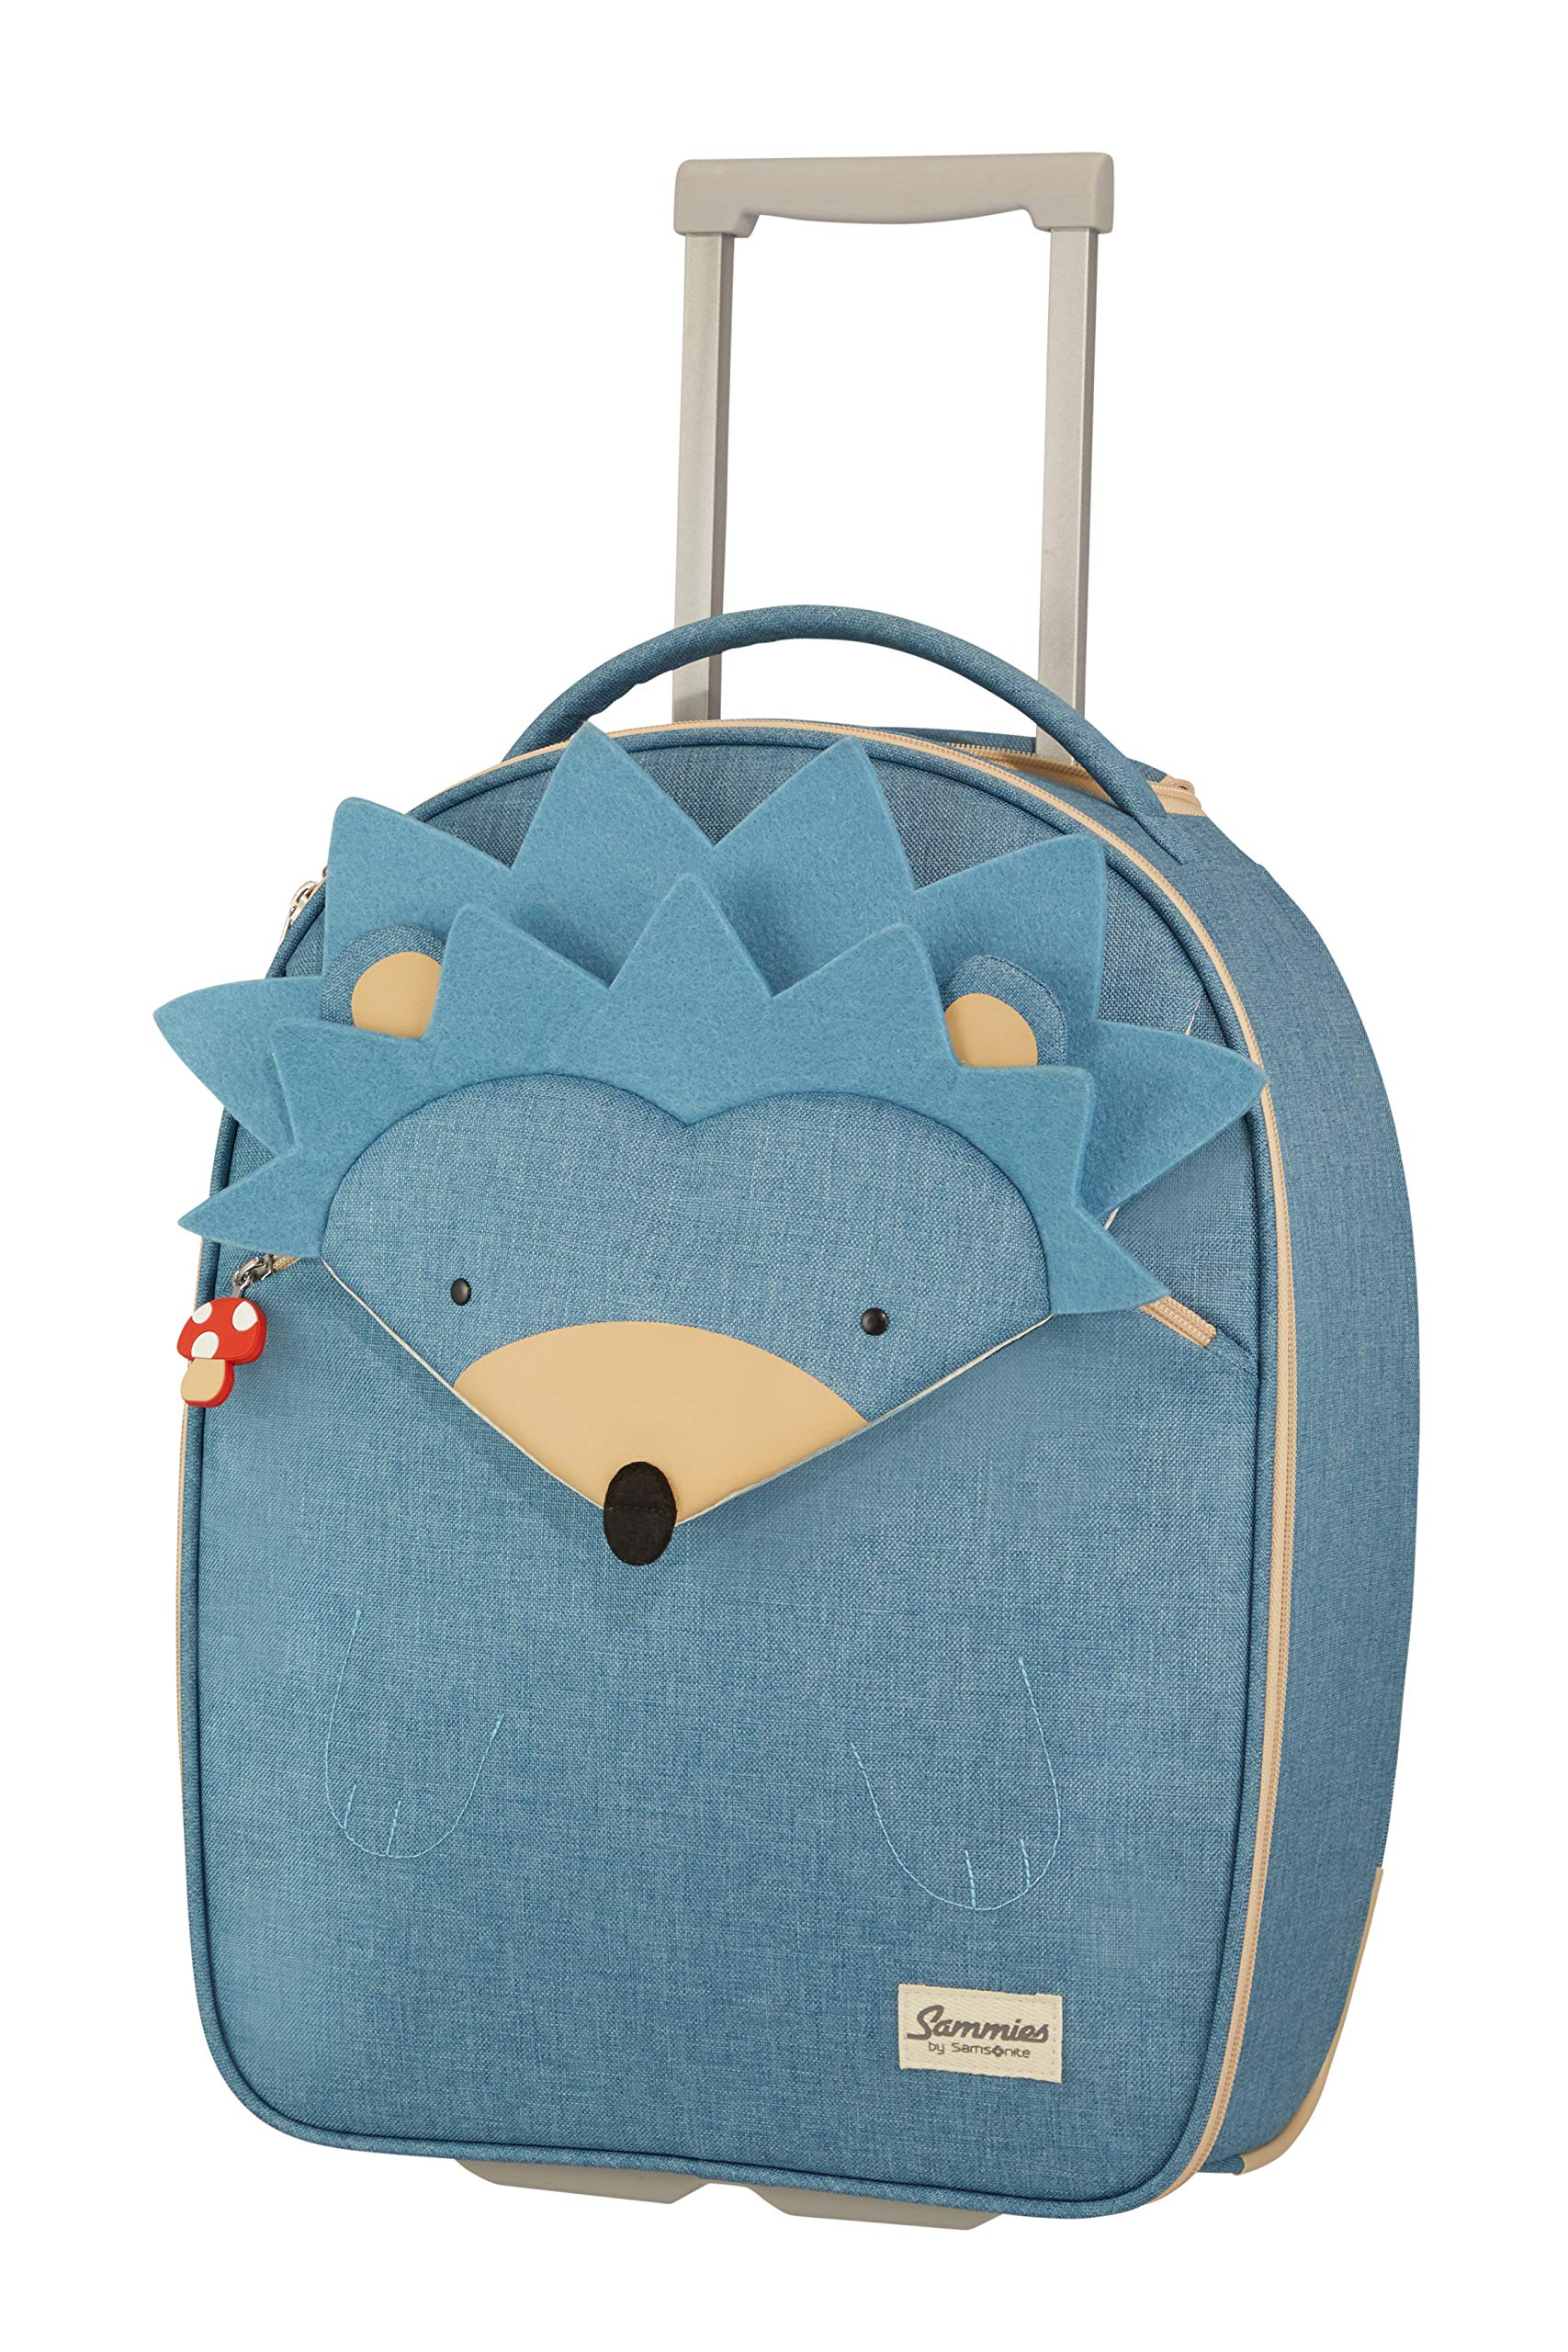 Samsonite-Happy-Sammies-Upright-4516-17-Kg-Kindergepck-45-cm